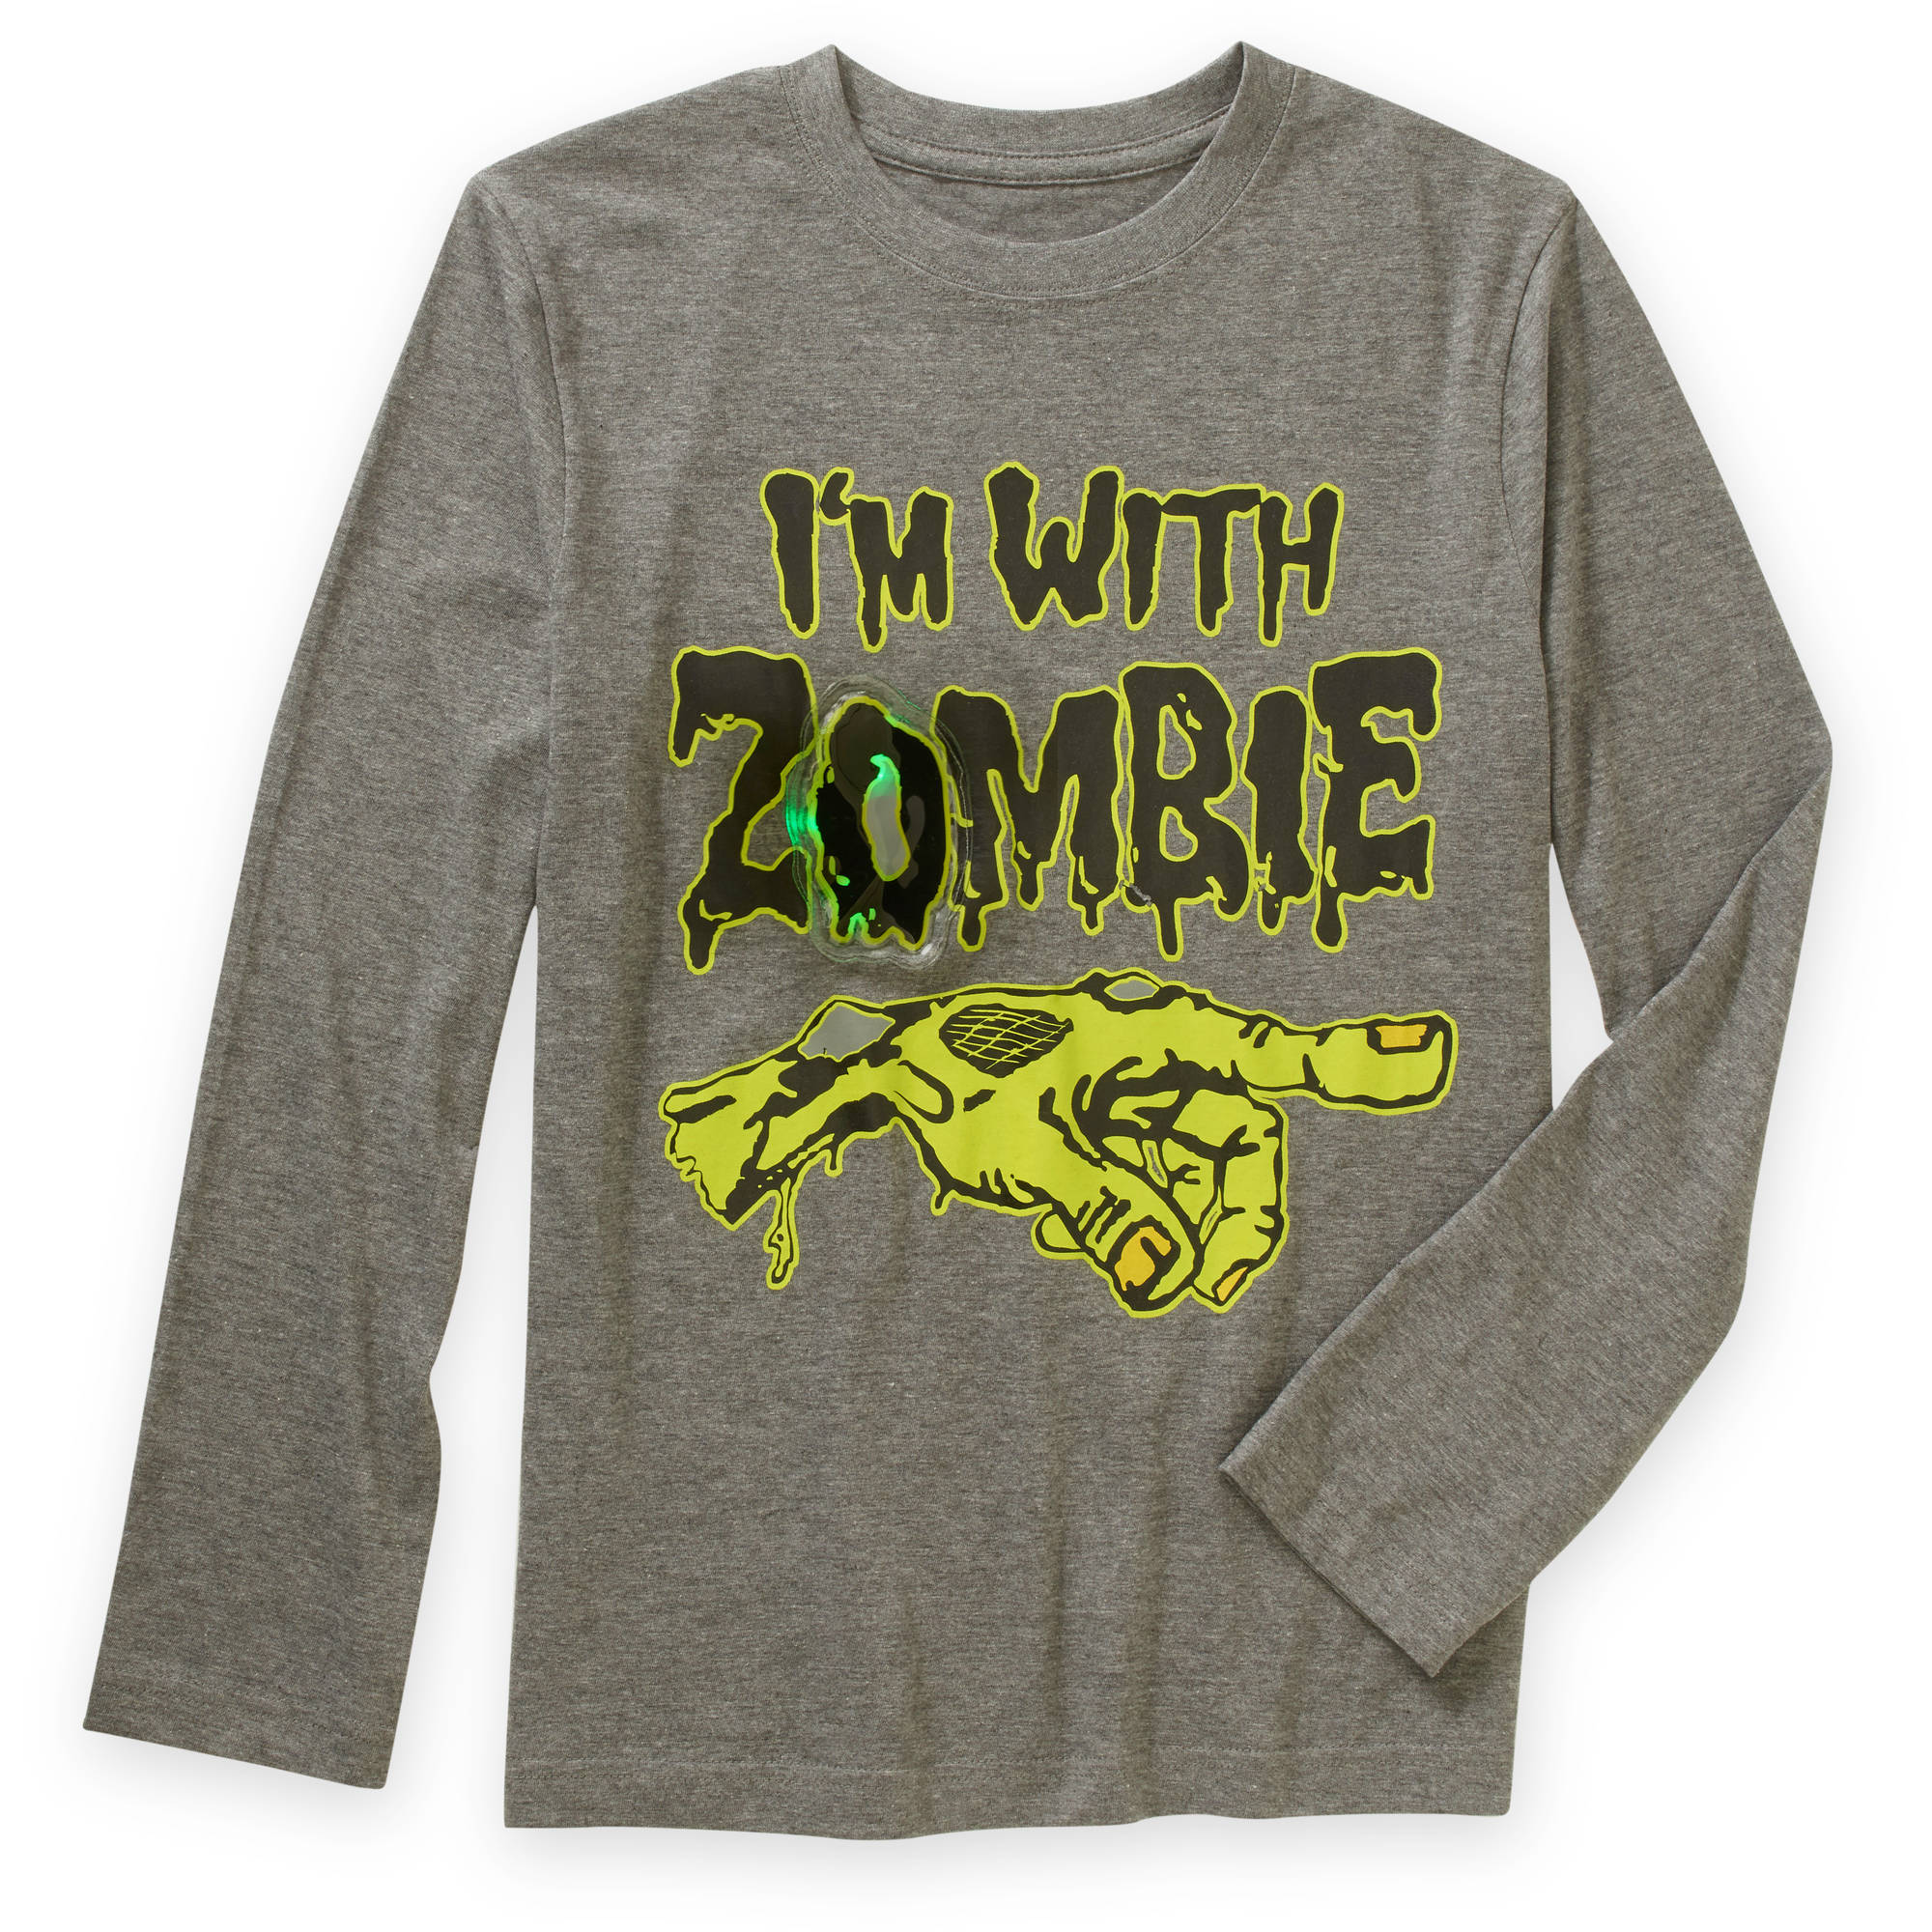 Boys' Light Up I'm With Zombie Graphic Tee